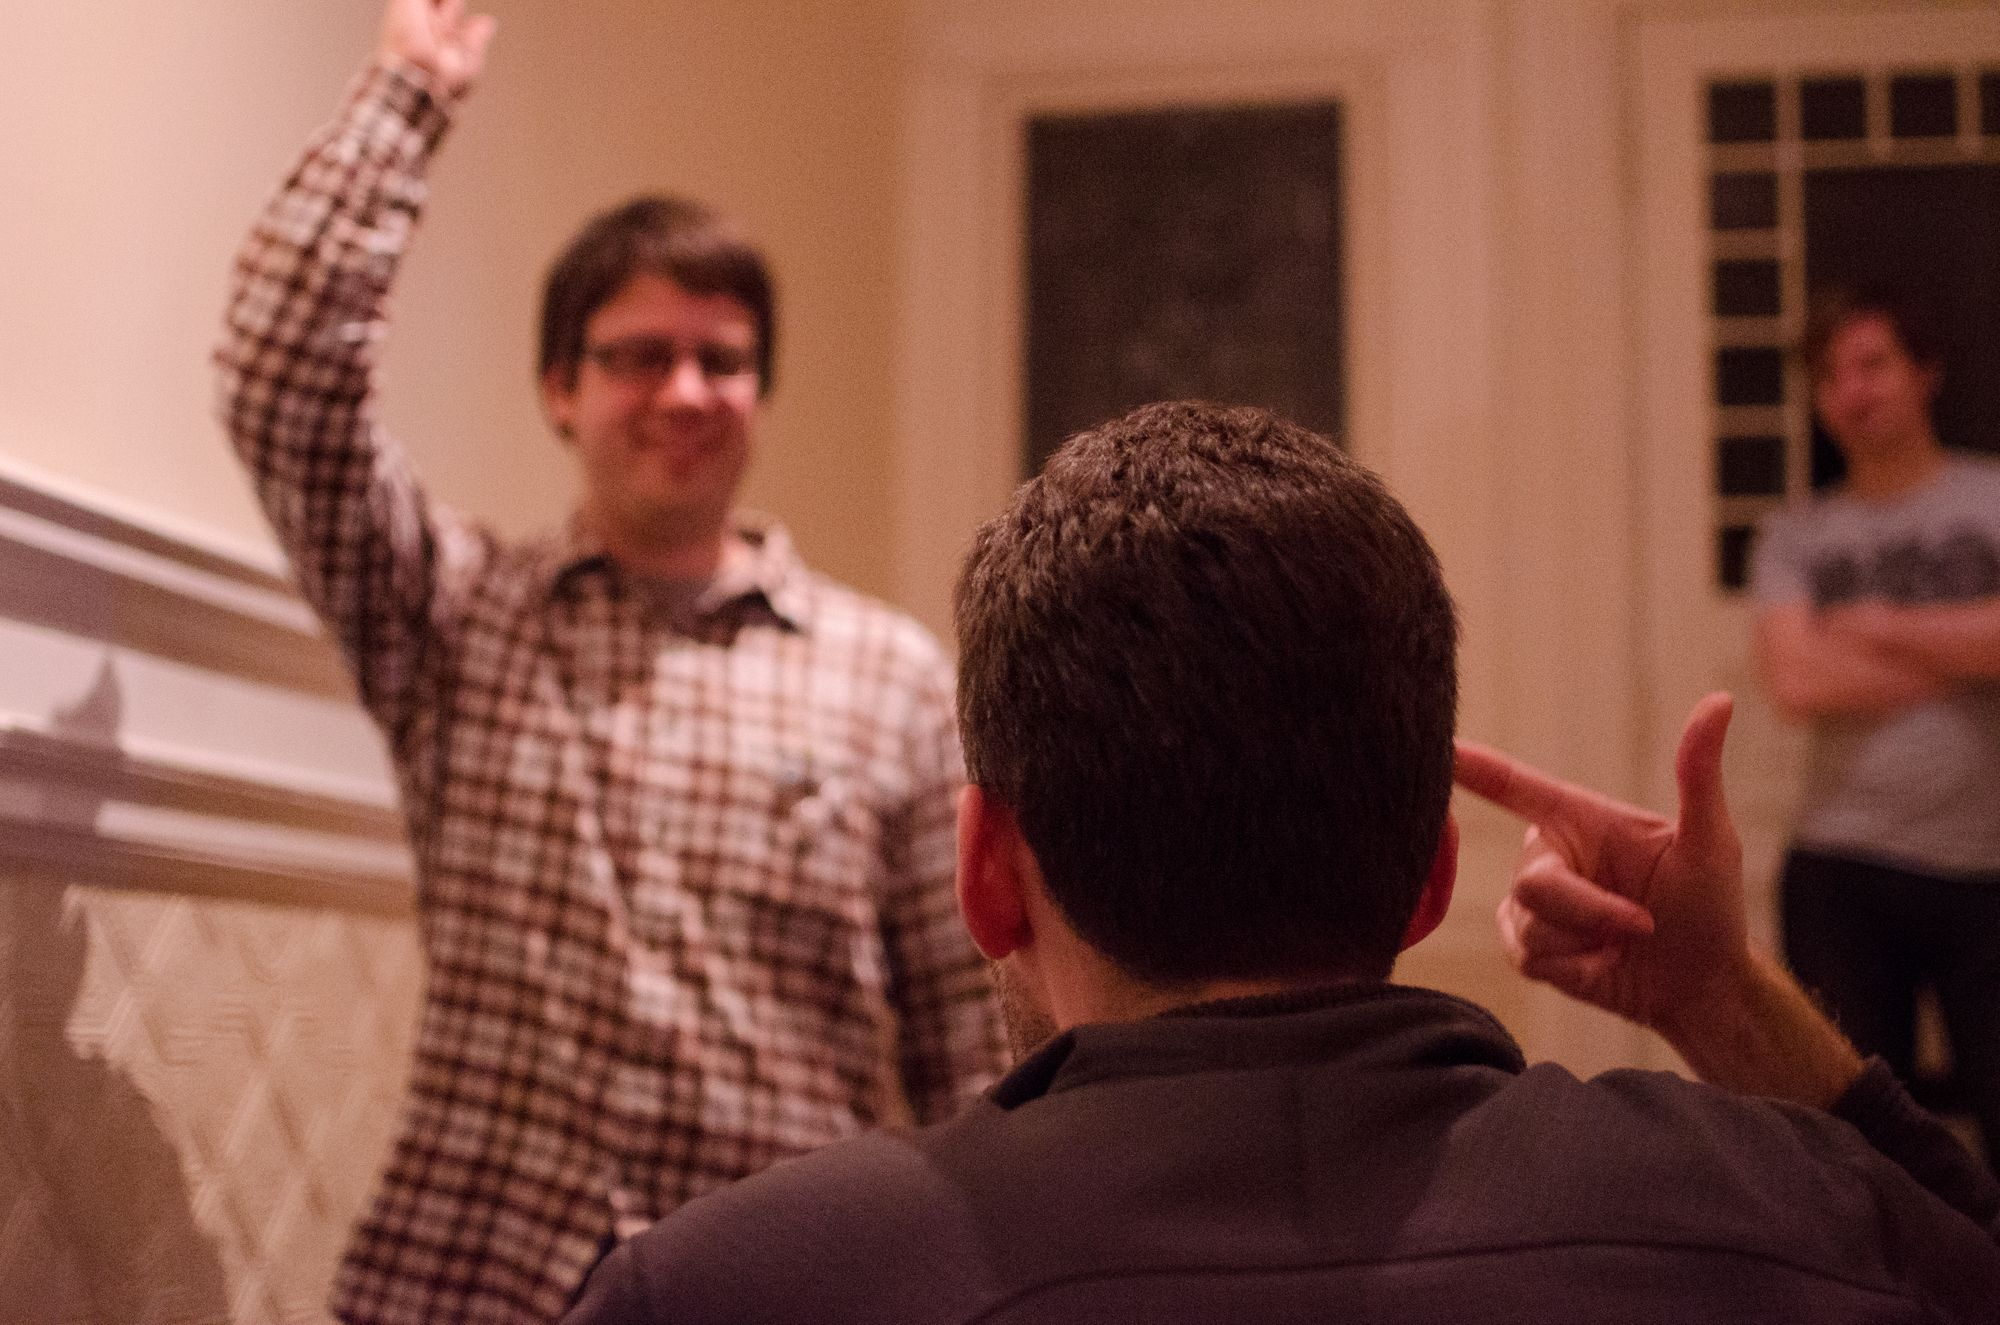 Two men are looking at each other. In the foreground, a man points to his head. In the distance, his opponent is pointing towards the air. The two are playing the folk game Standoff.